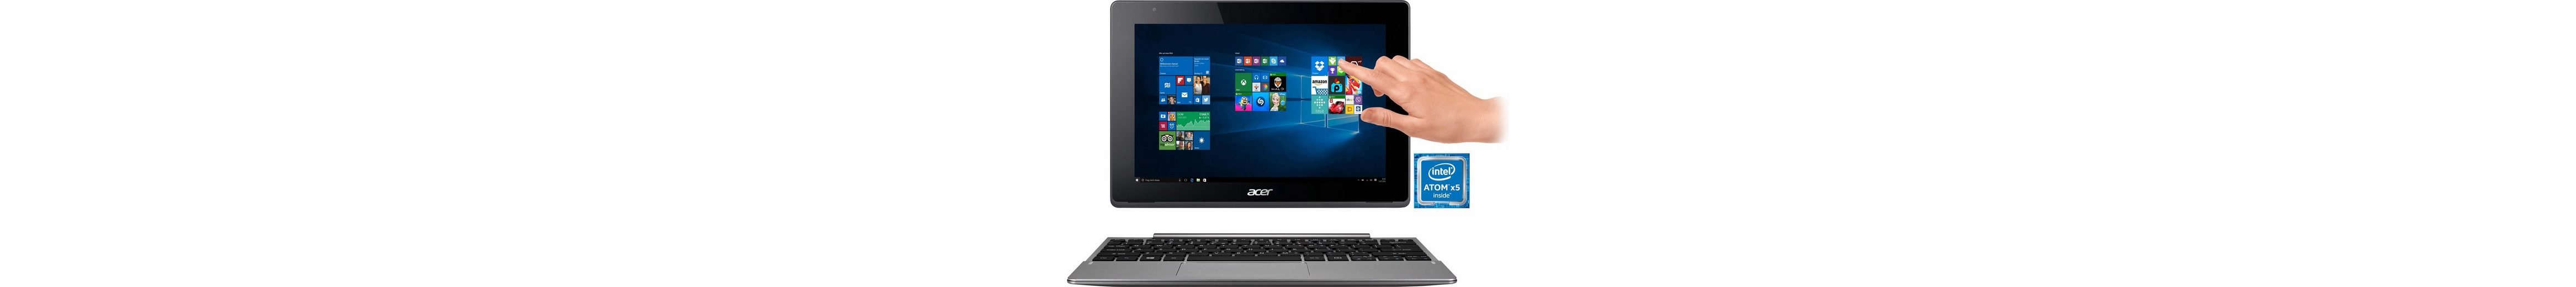 Acer Aspire Switch 10V Convertible Notebook, Intel® Atom™, 25,6 cm (10,1 Zoll), 32 GB Speicher